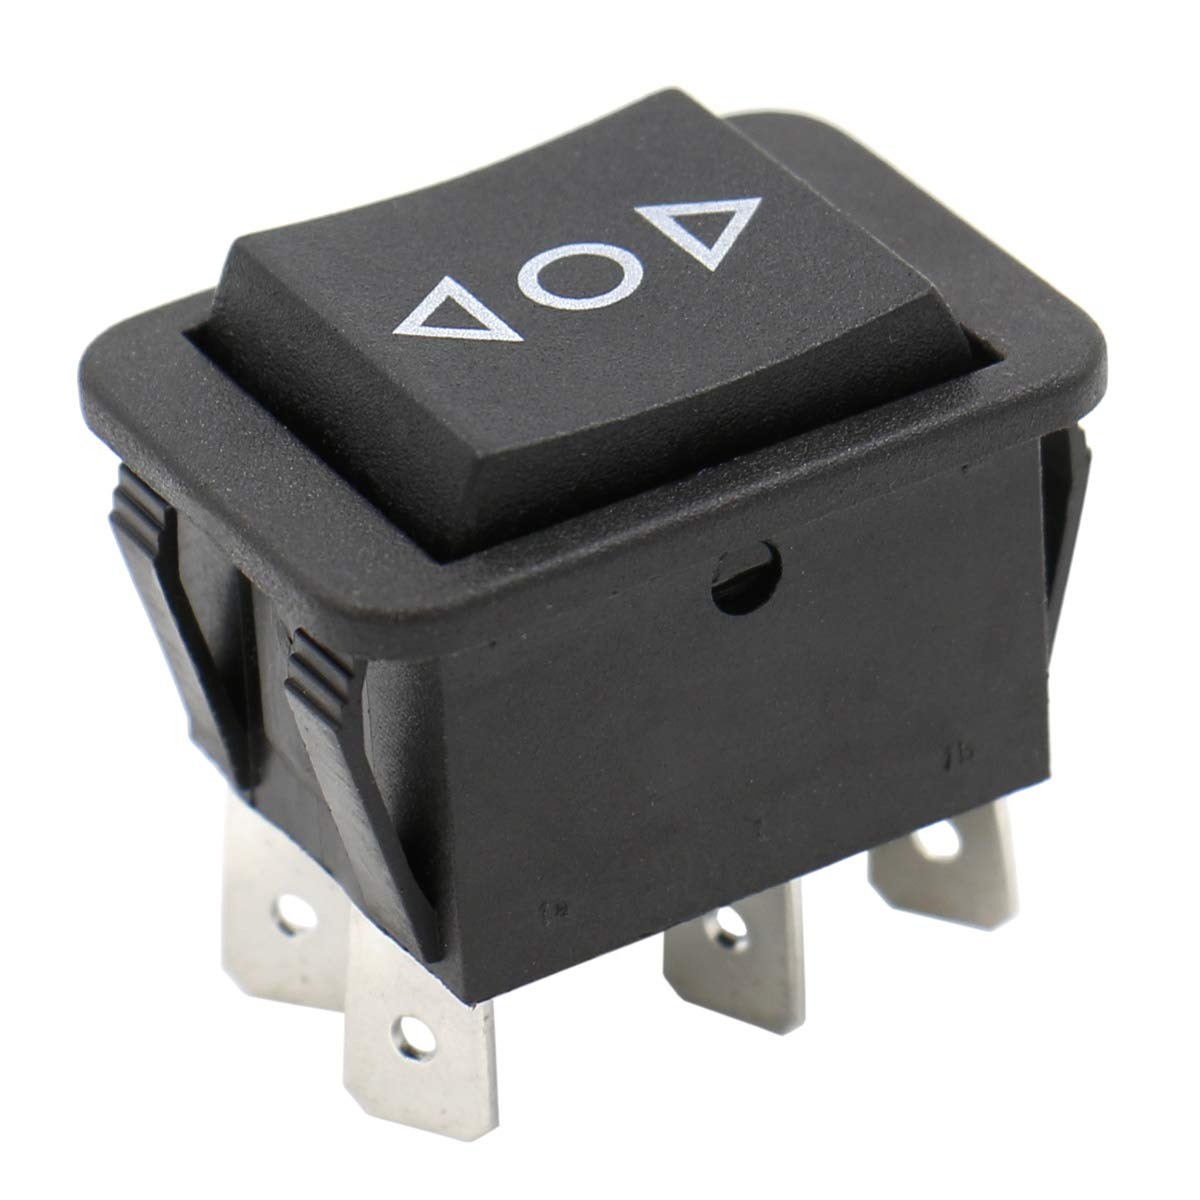 Heschen metal toggle switch SPDT maintained ON//OFF//ON 3 position 15A 250VAC with waterproof cap CE